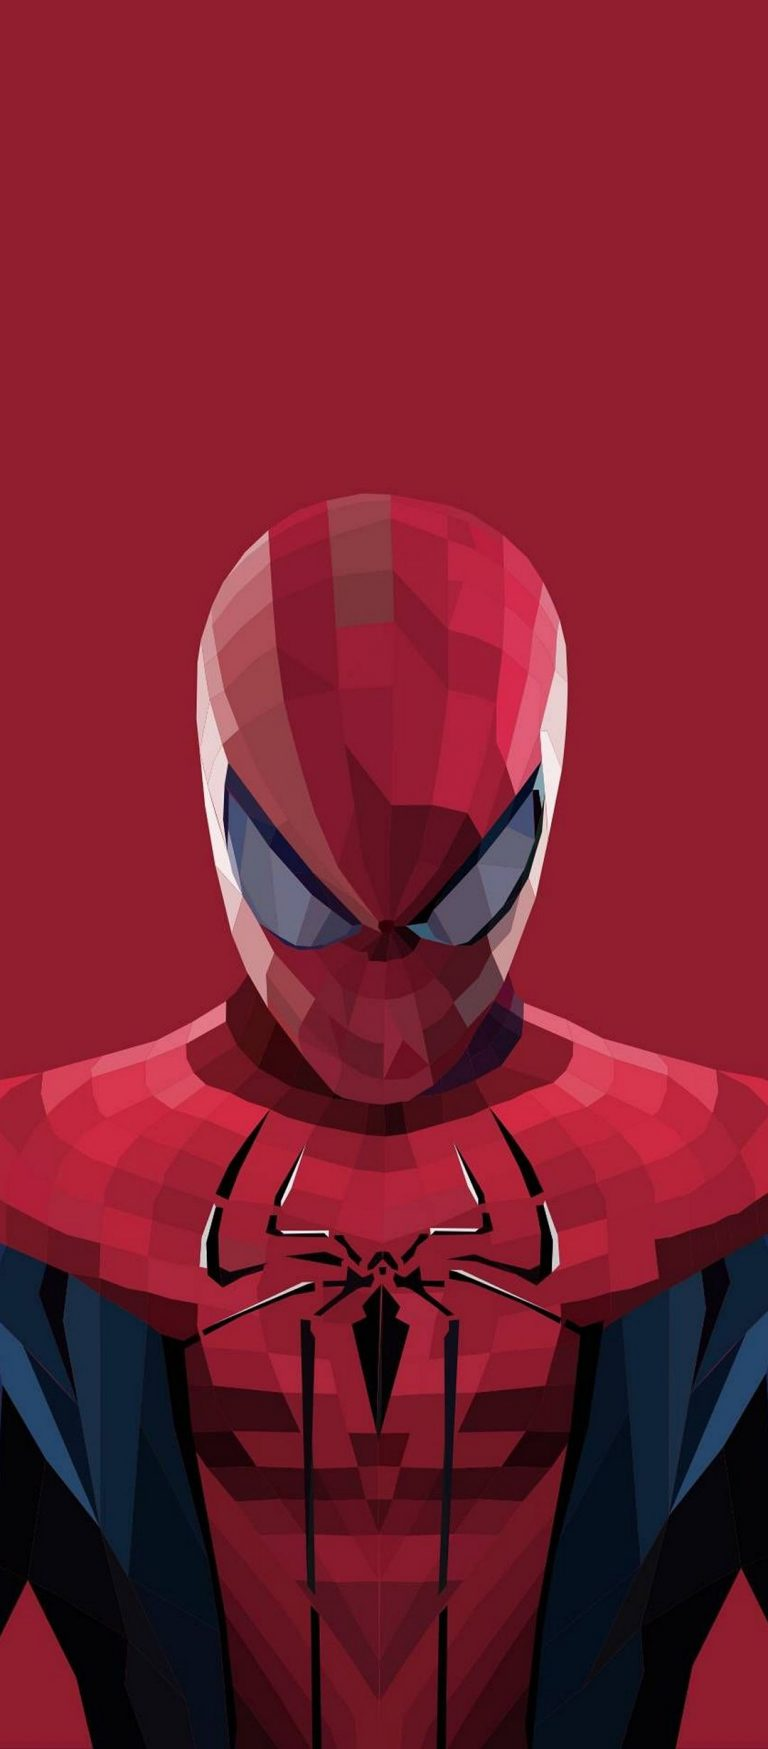 Superhero Spiderman Cartoon 1080x2460 768x1749